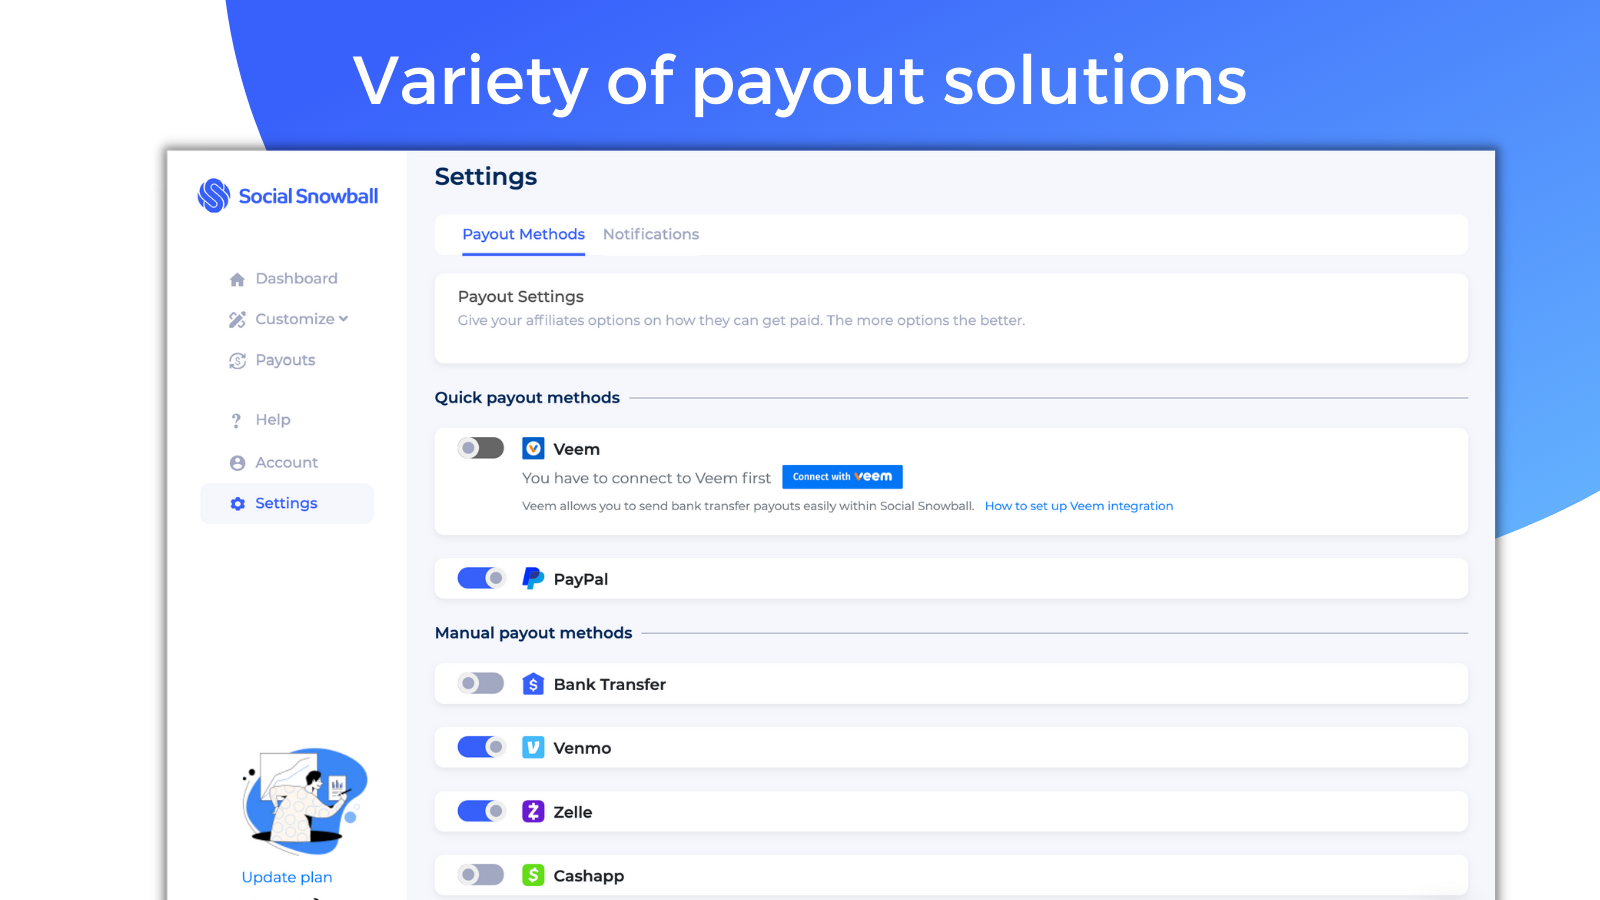 Payout Solutions